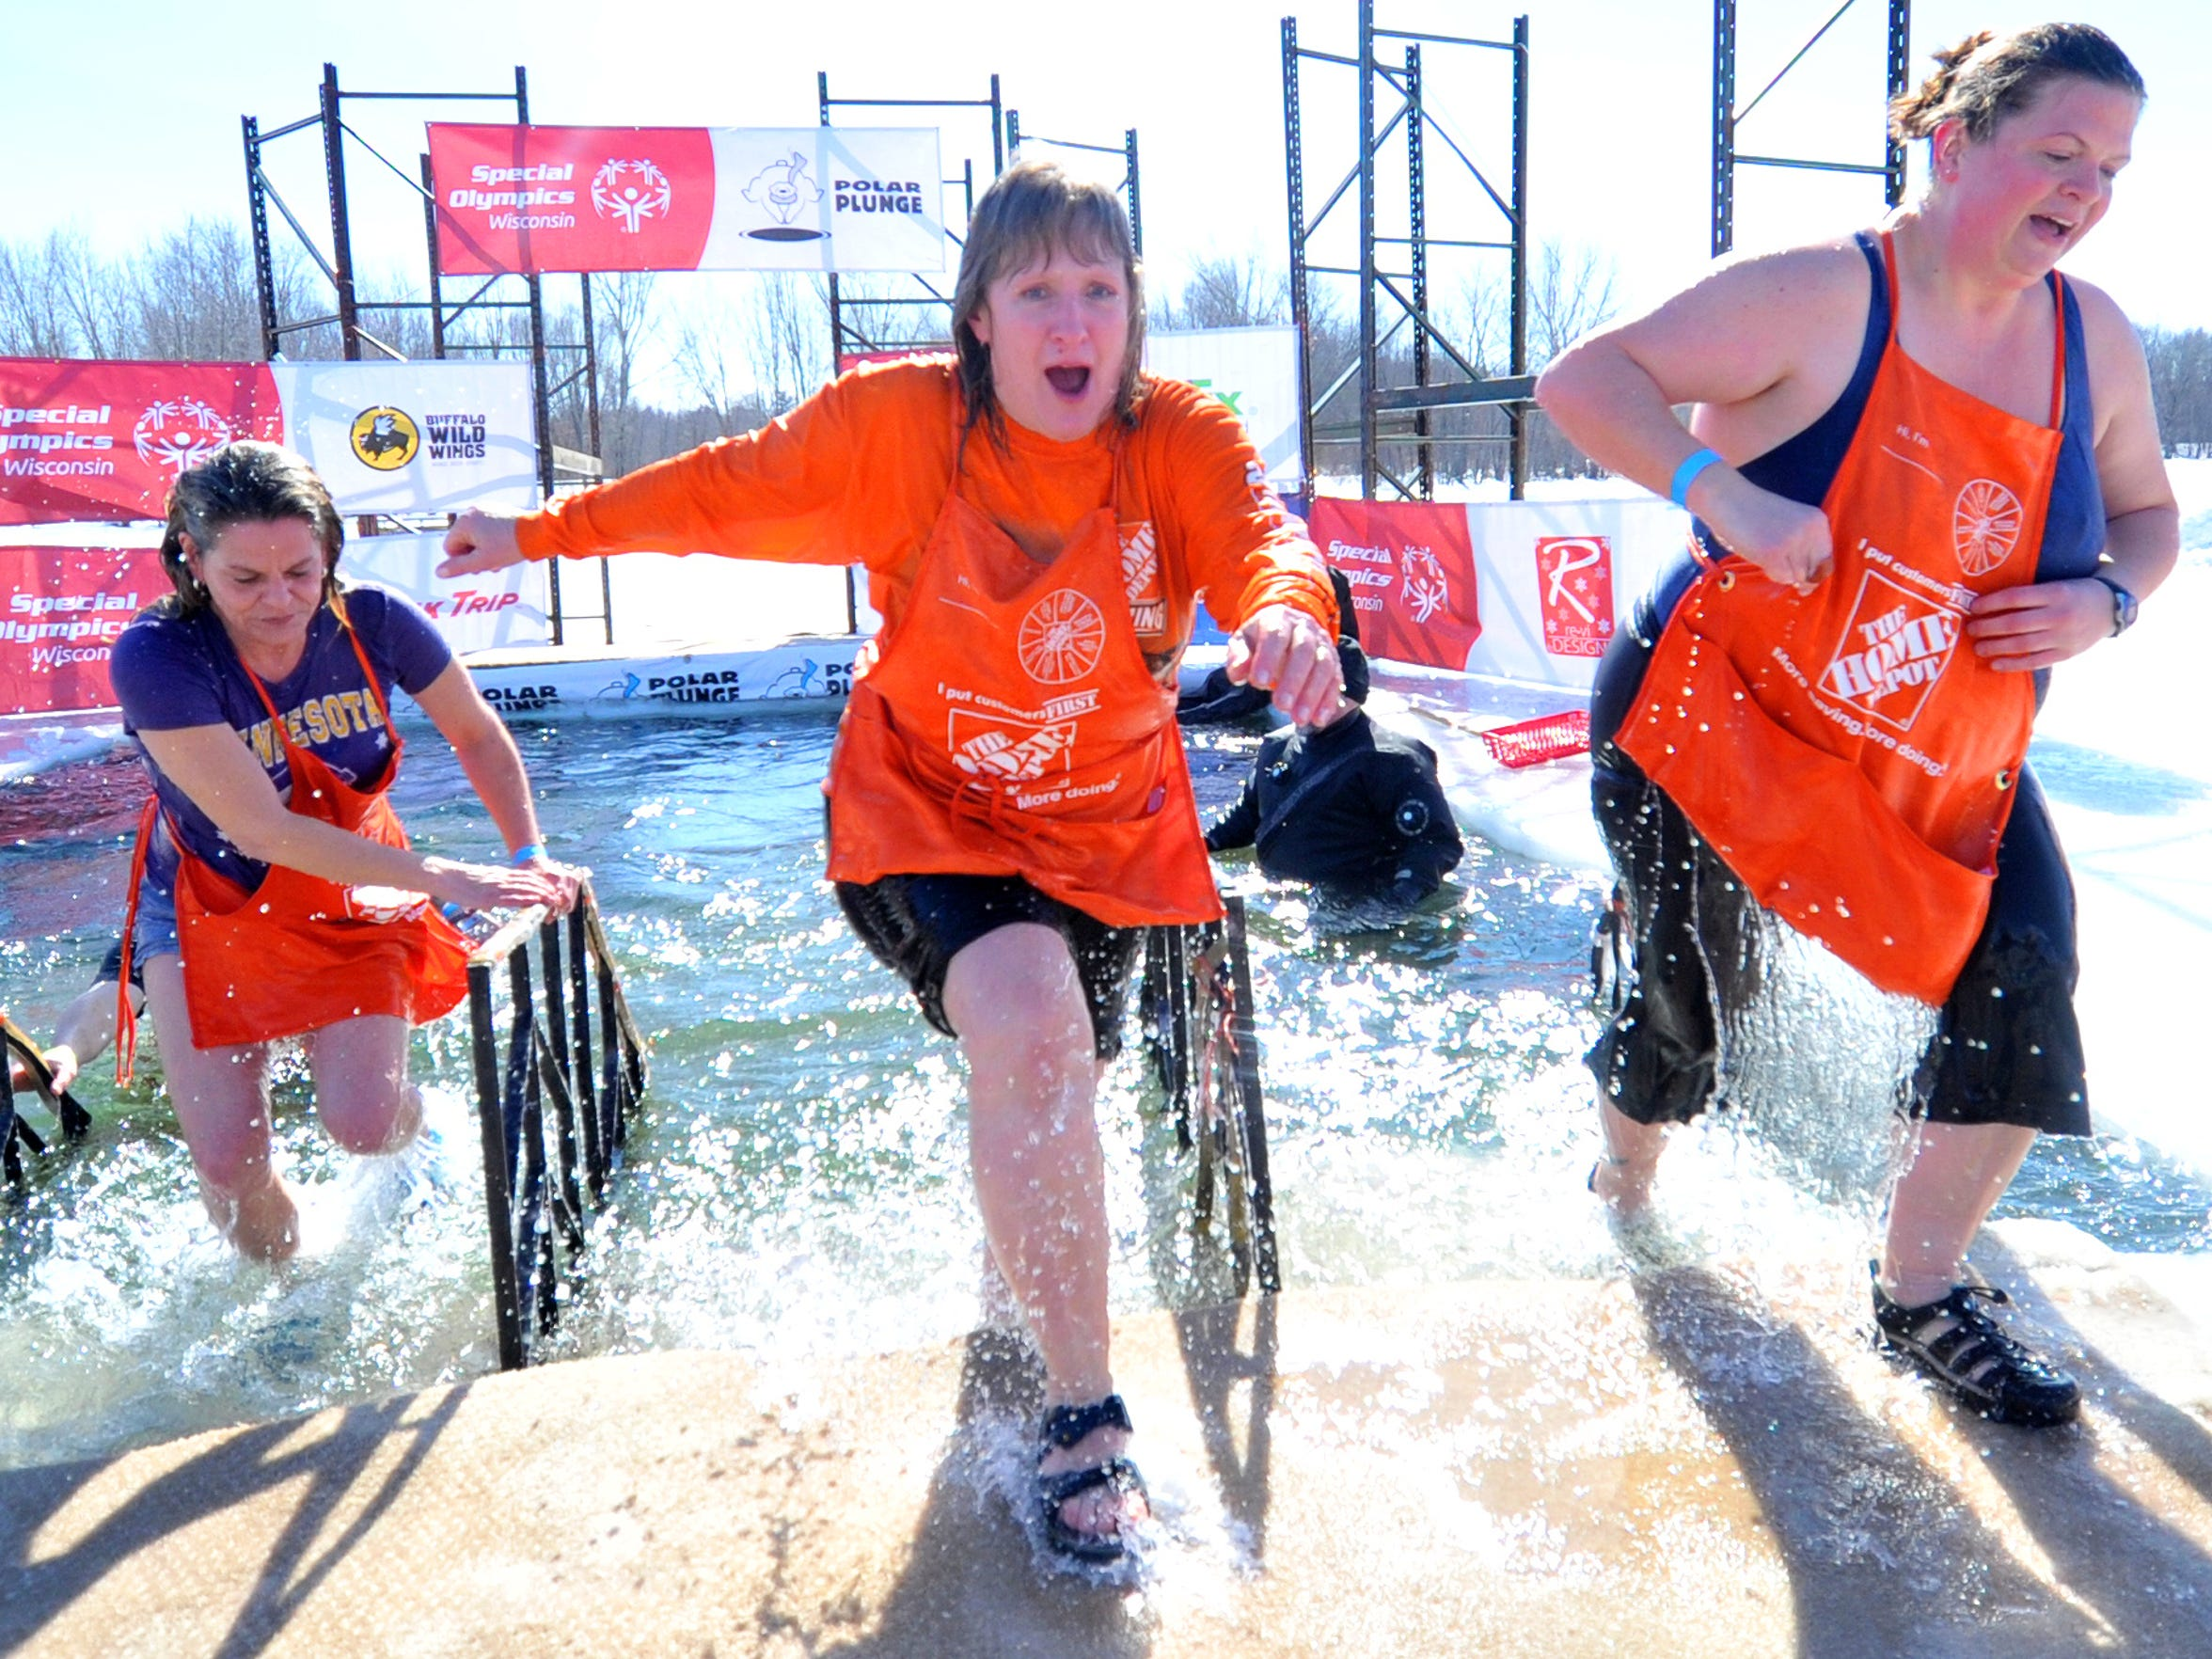 Amy Stanchik, from right, Sandy Haas and Ann Hamburg, all of Wausau, climb out of the frigid water during Saturday's Polar Plunge at Sunnyvale Park in Wausau. The annual event benefits Special Olympics Wisconsin.